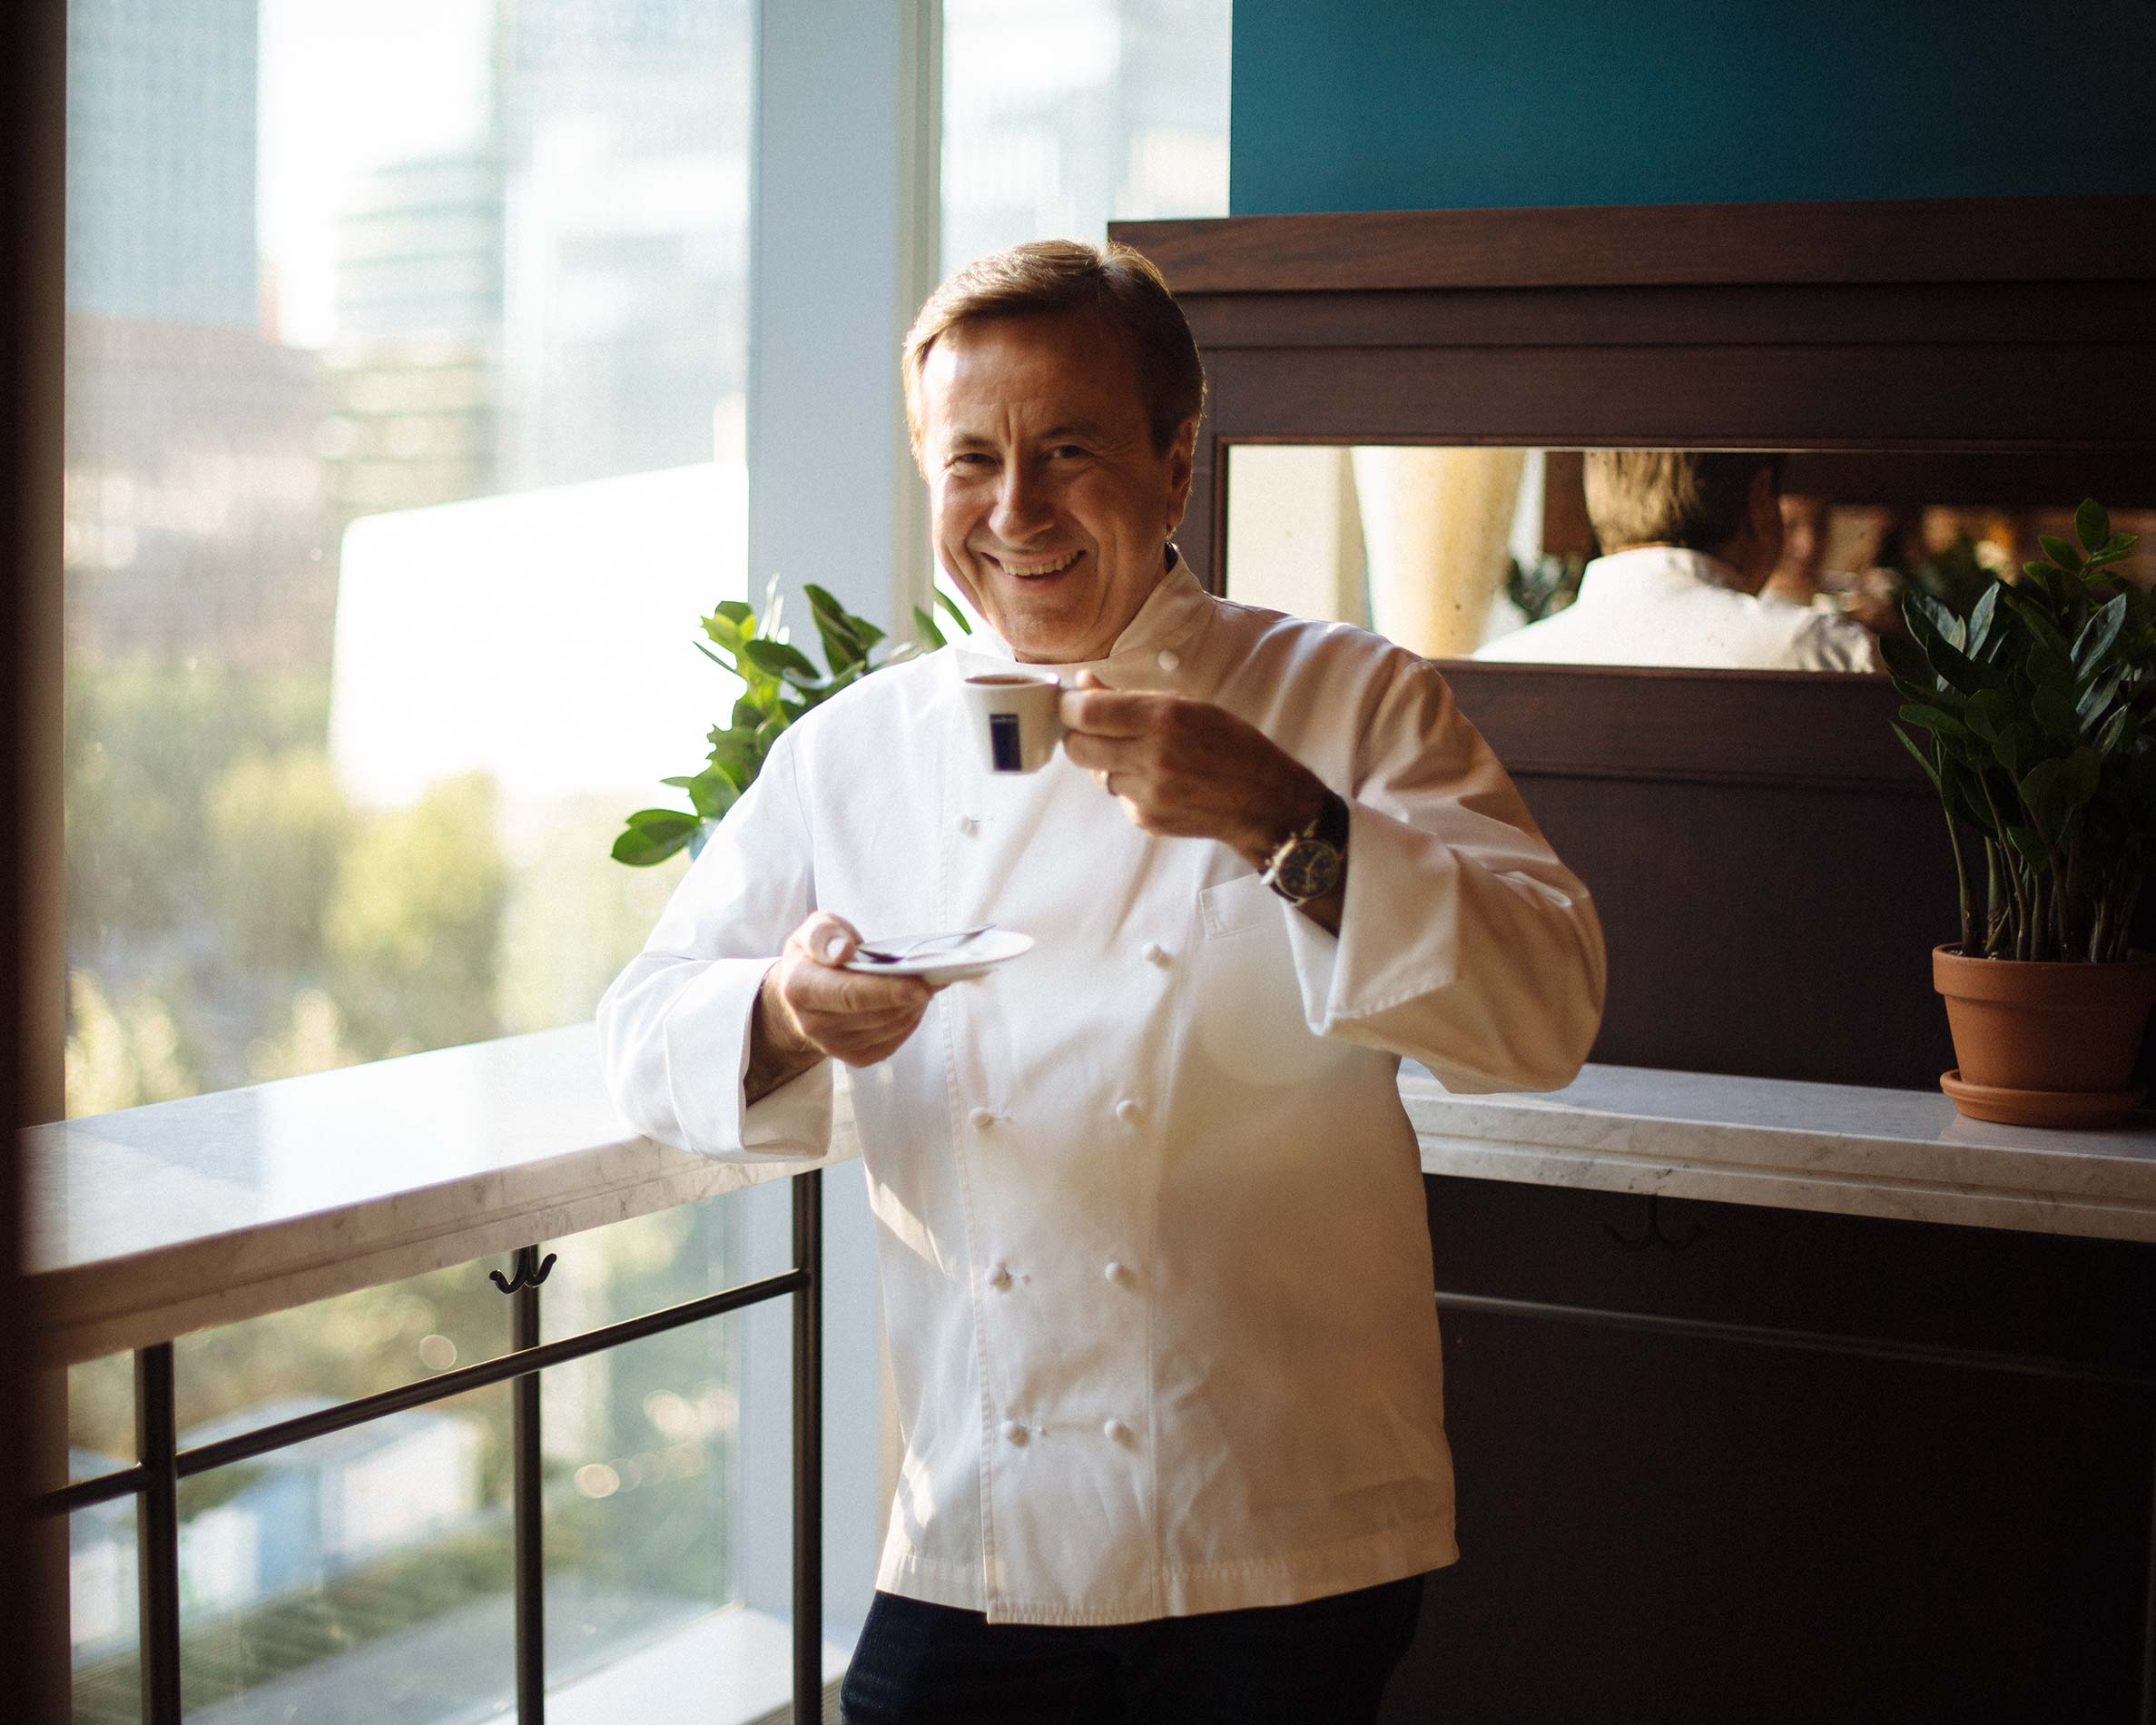 M. Cooper — Chef Daniel Boulud/New York Magazine